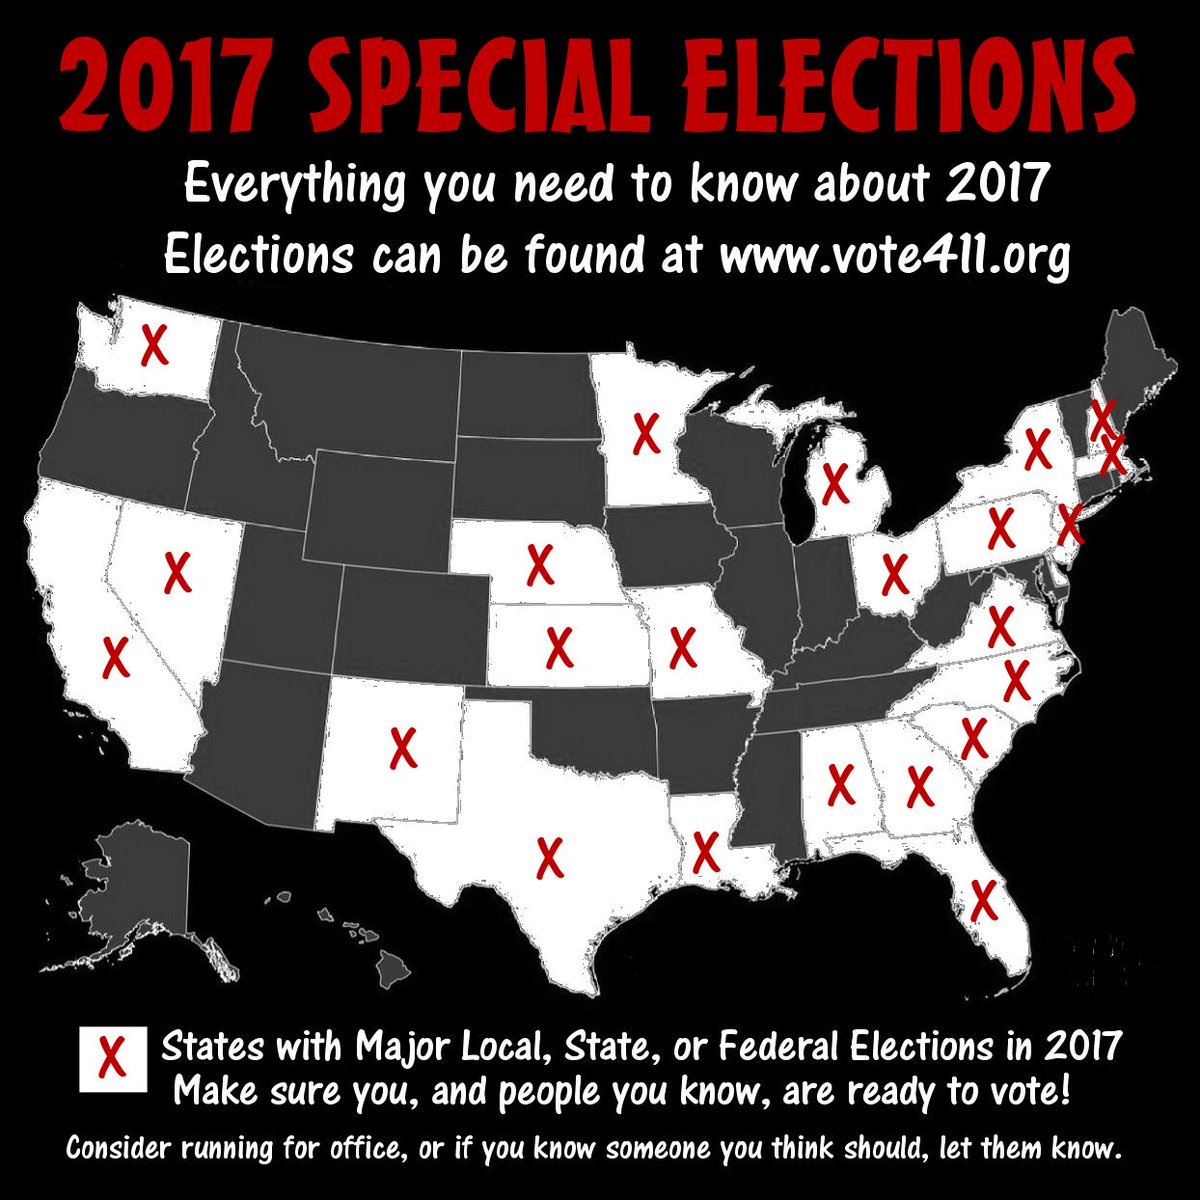 #TheResistance  Is a special election happening in your area?  2017 elections:  http://www. vote411.org / &nbsp;    Make sure you can &amp; do vote!<br>http://pic.twitter.com/o8xUaUNnxl